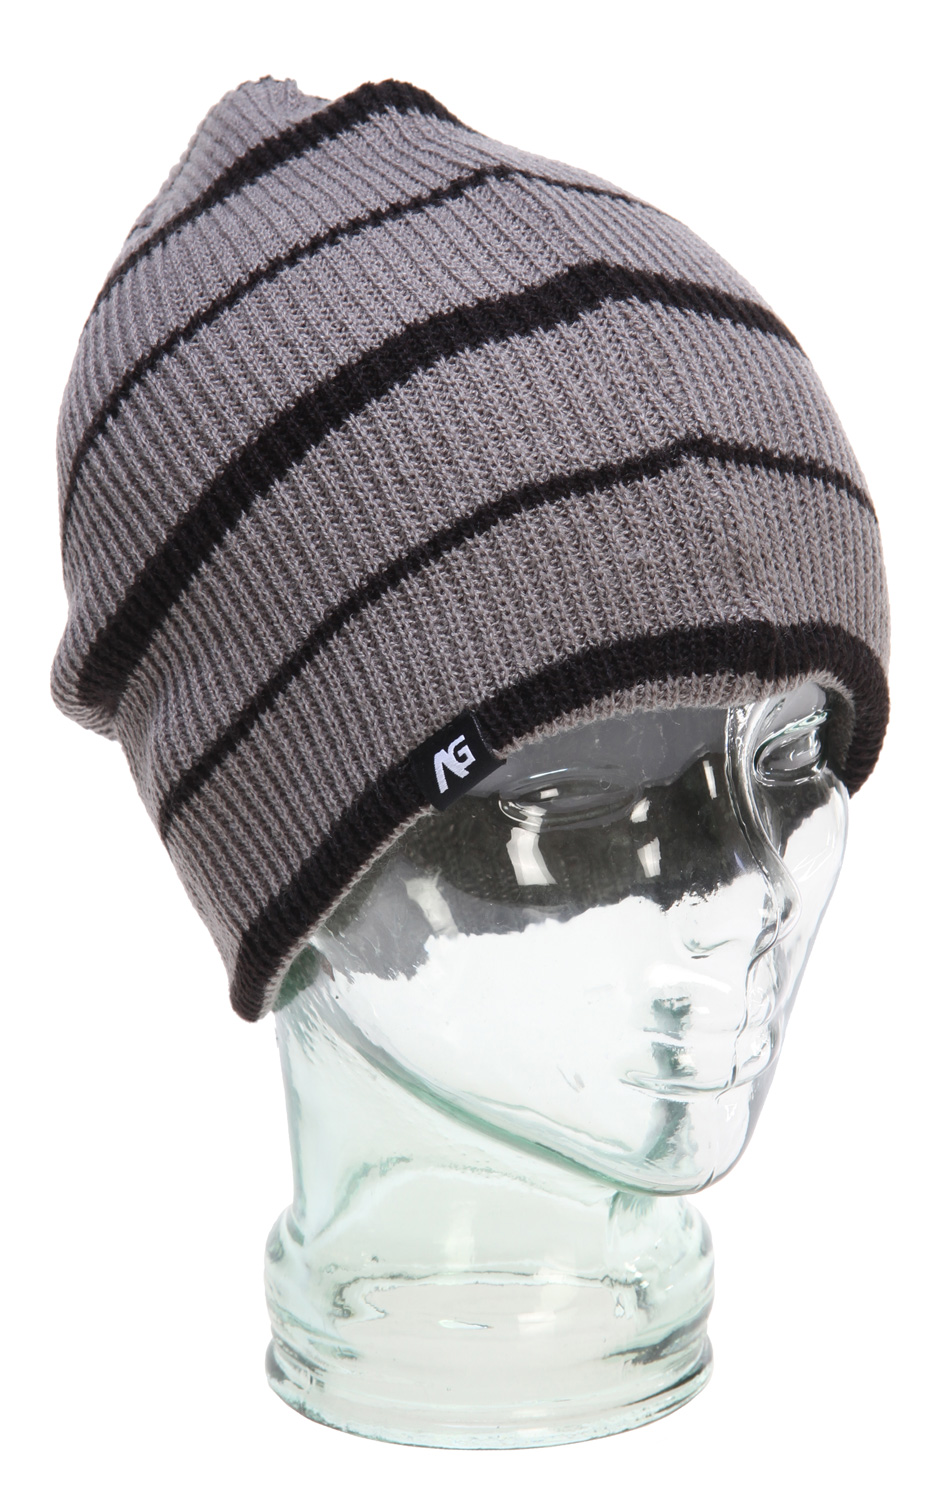 Key Features of the Analog Slouch Beanie: 100% Acrylic Repeat stripe yarn dye Slouch fit - $27.95